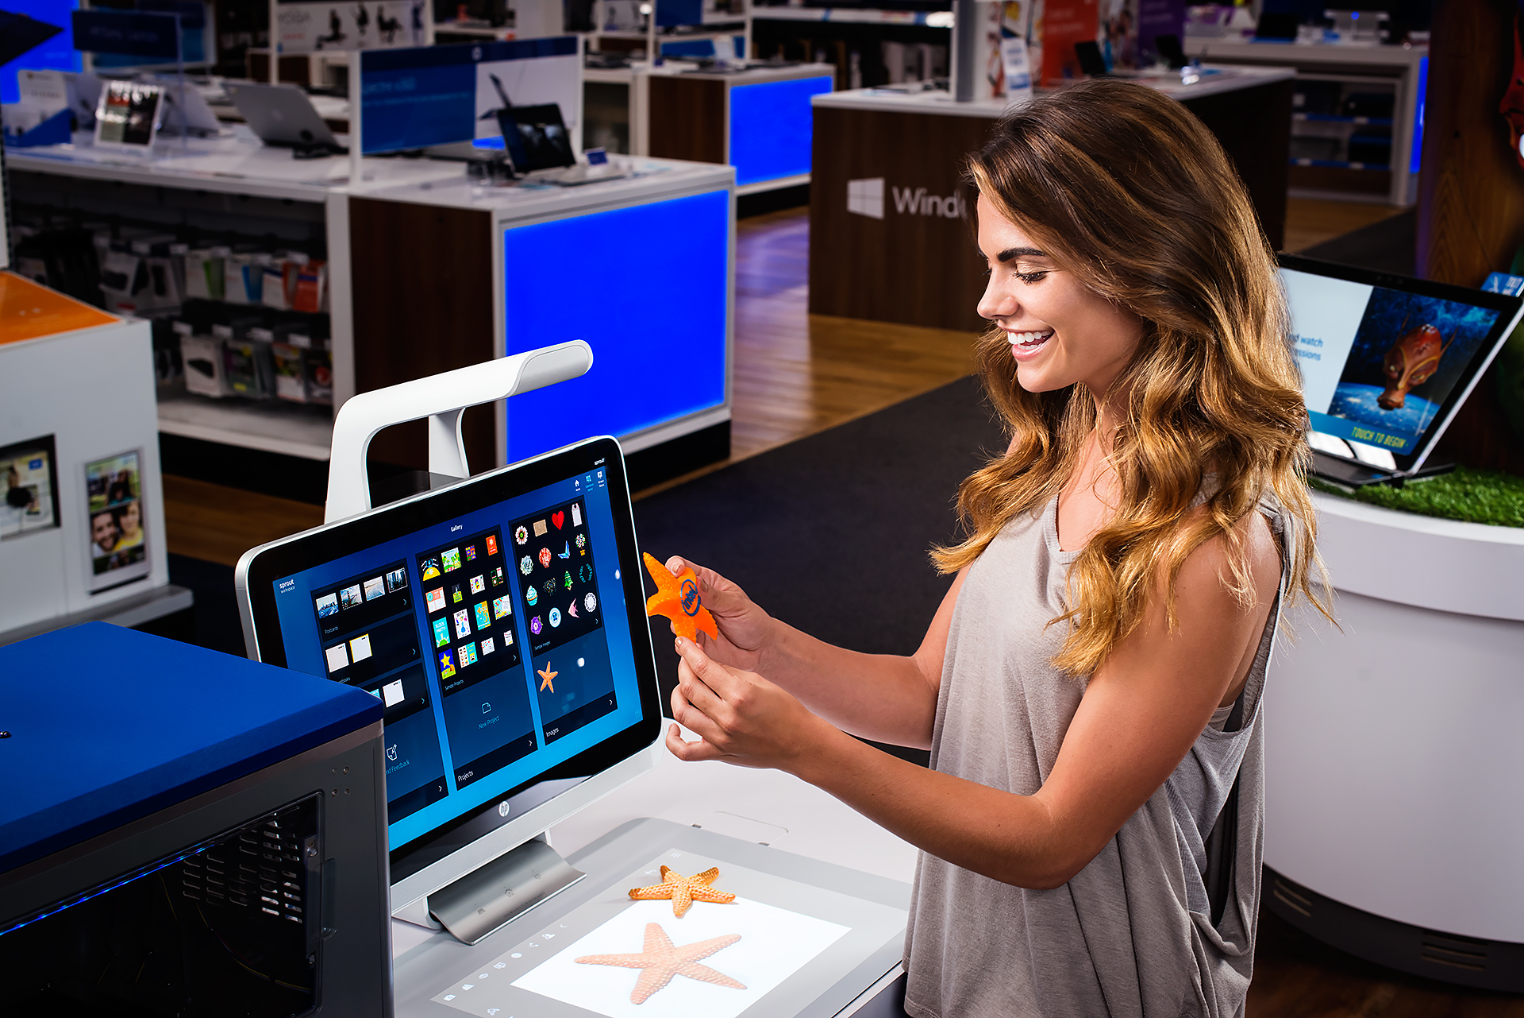 A New Dimension of Creativity:  Introducing a fully-integrated desktop 3D scanning solution from HP. Powered by Intel® RealSense™ technology, Sprout lets you scan 3D objects from the physical world, reimagine them in the digital world, and then bring them back to life with easy 3D print options.